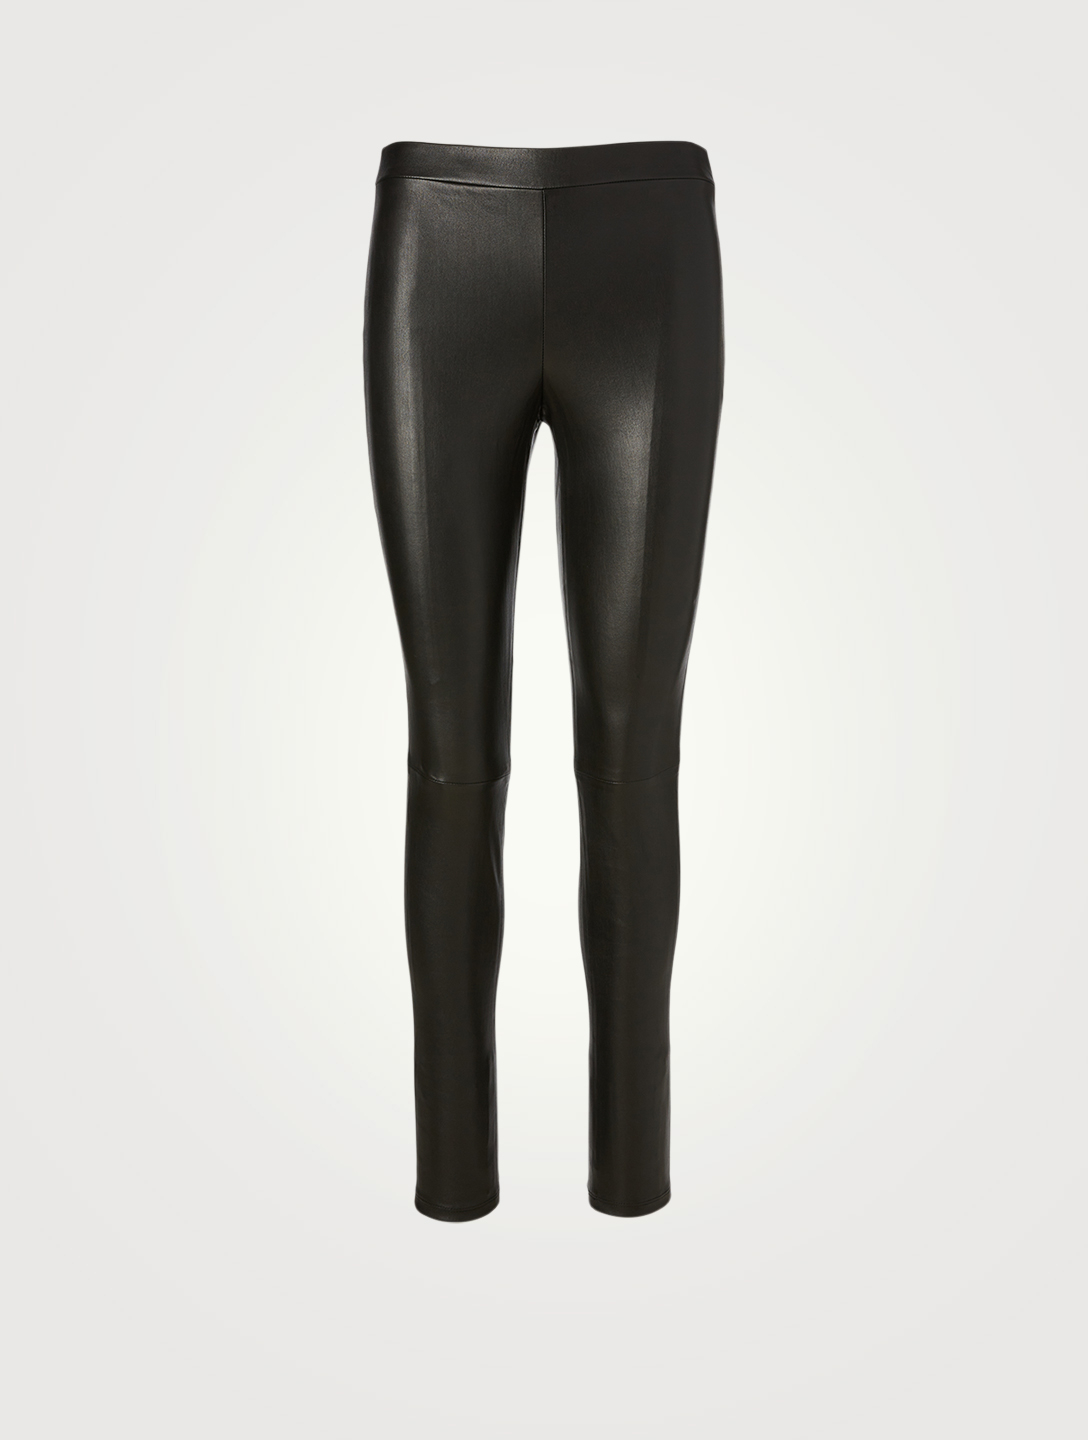 THEORY Leather Skinny Leggings Women's Black